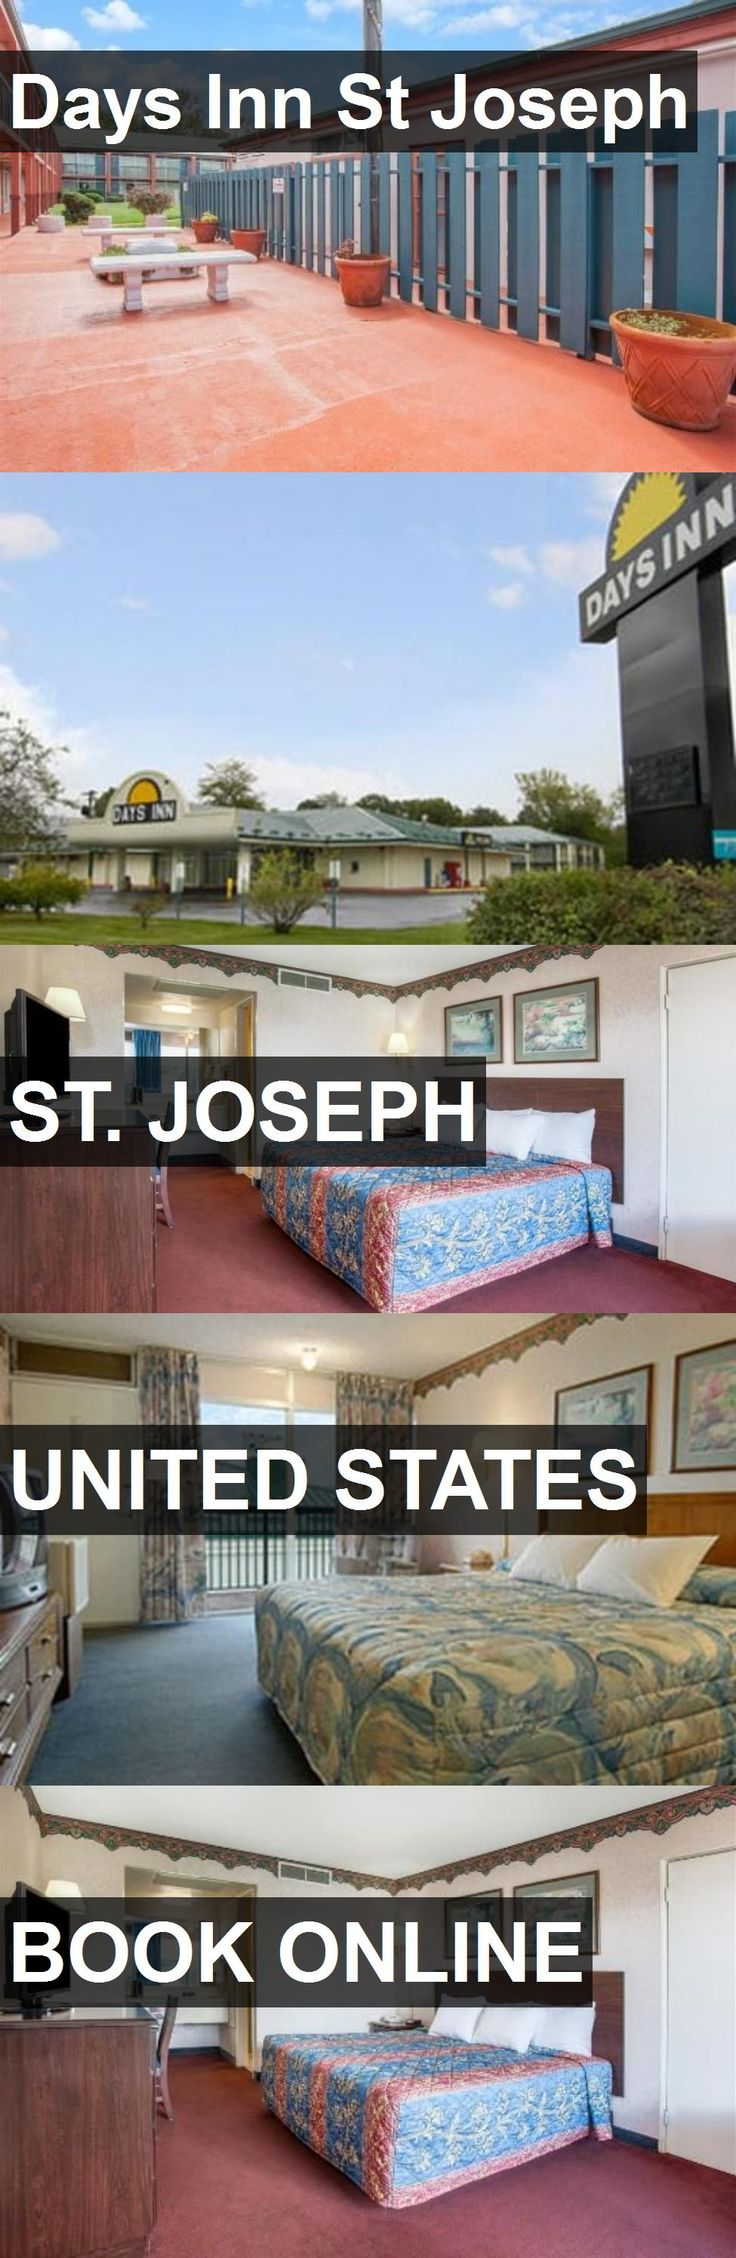 Hotel Days Inn St Joseph in St. Joseph, United States. For more information, photos, reviews and best prices please follow the link. #UnitedStates #St.Joseph #travel #vacation #hotel